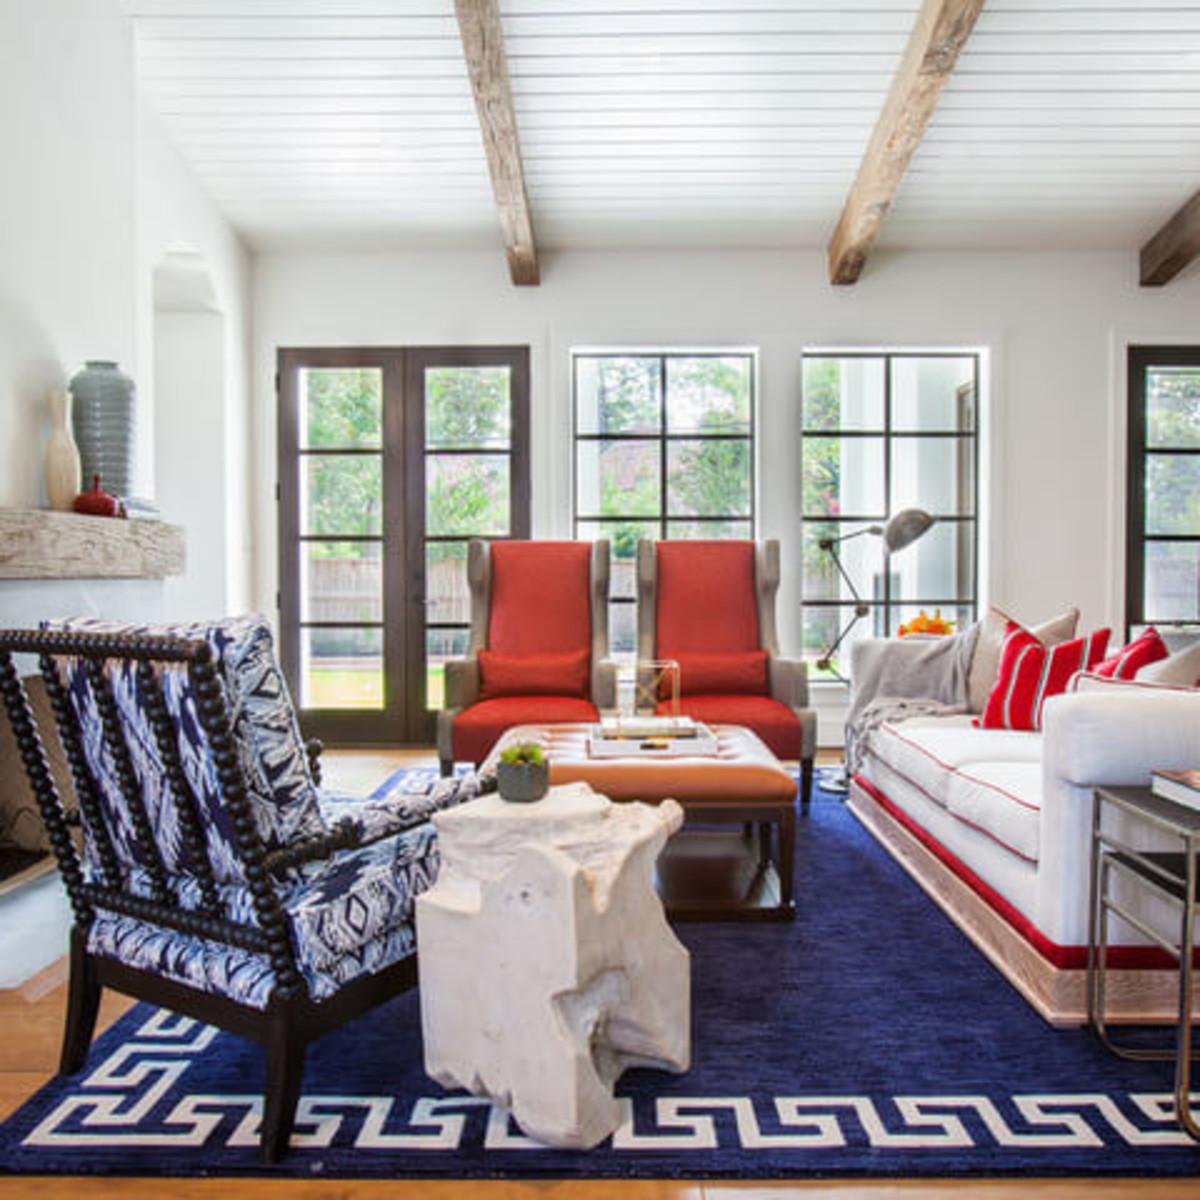 Houzz Houston house home Southern Americana Spanish colonial June 2016 living room